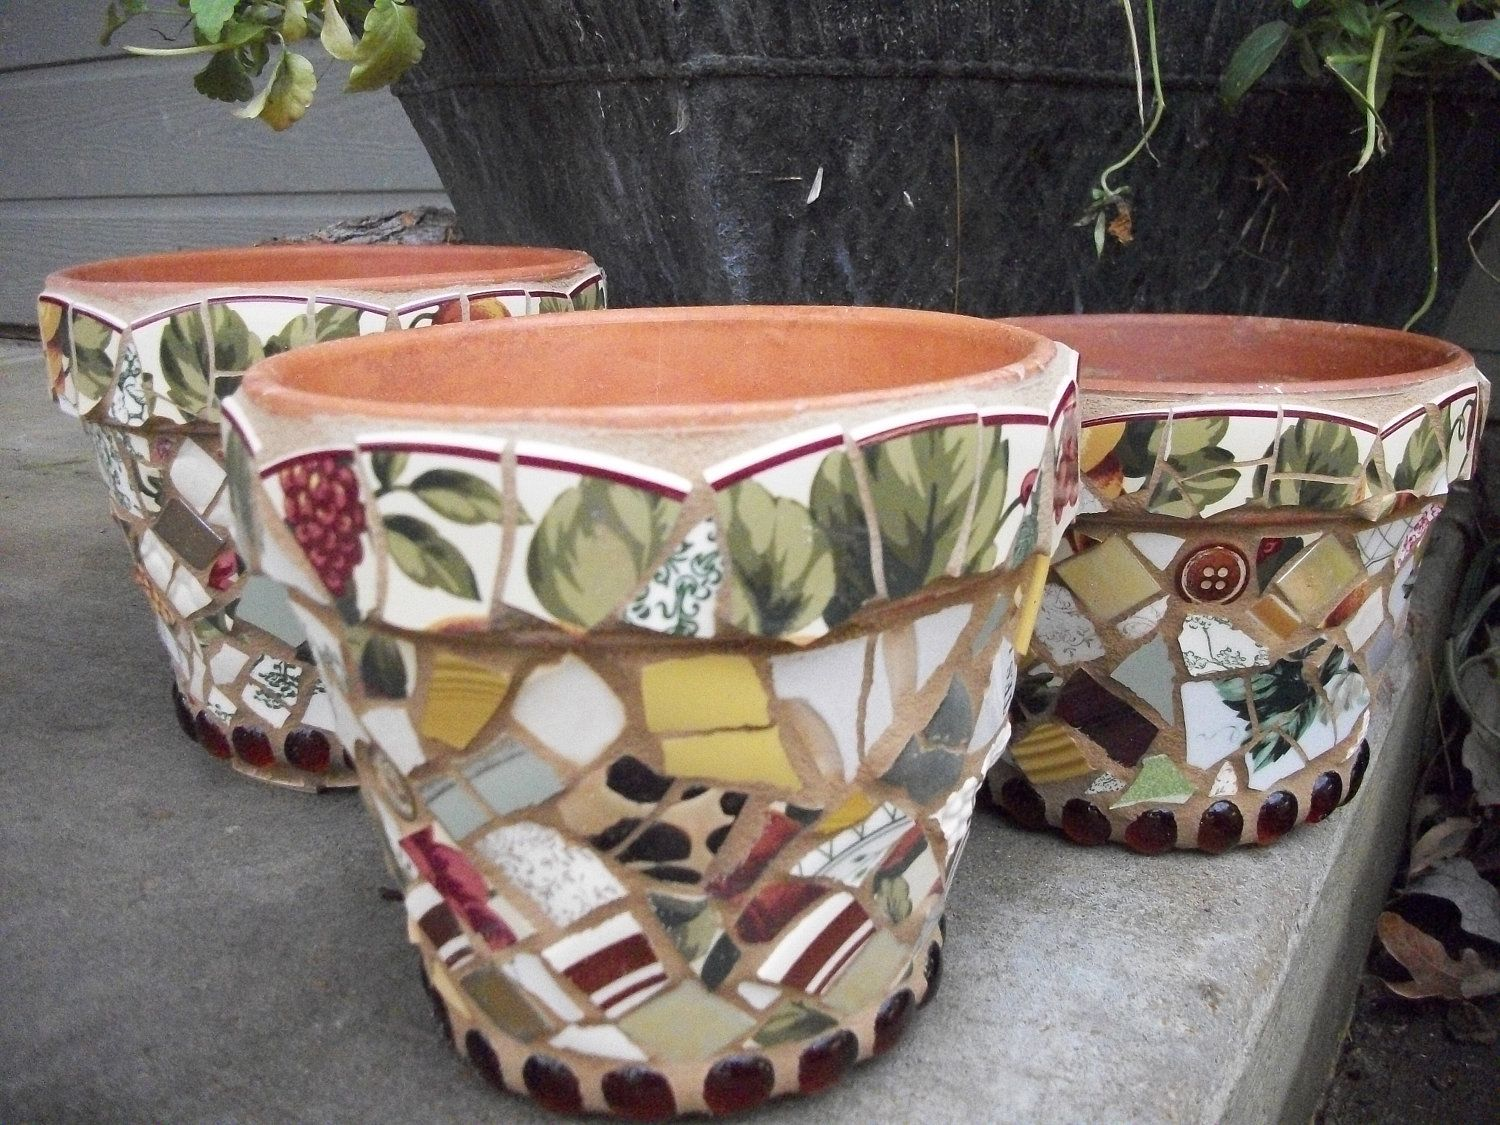 Plant Pot Sale Mosaic Flower Pot X 3 Mosaic Flower Pots Yard Sale And